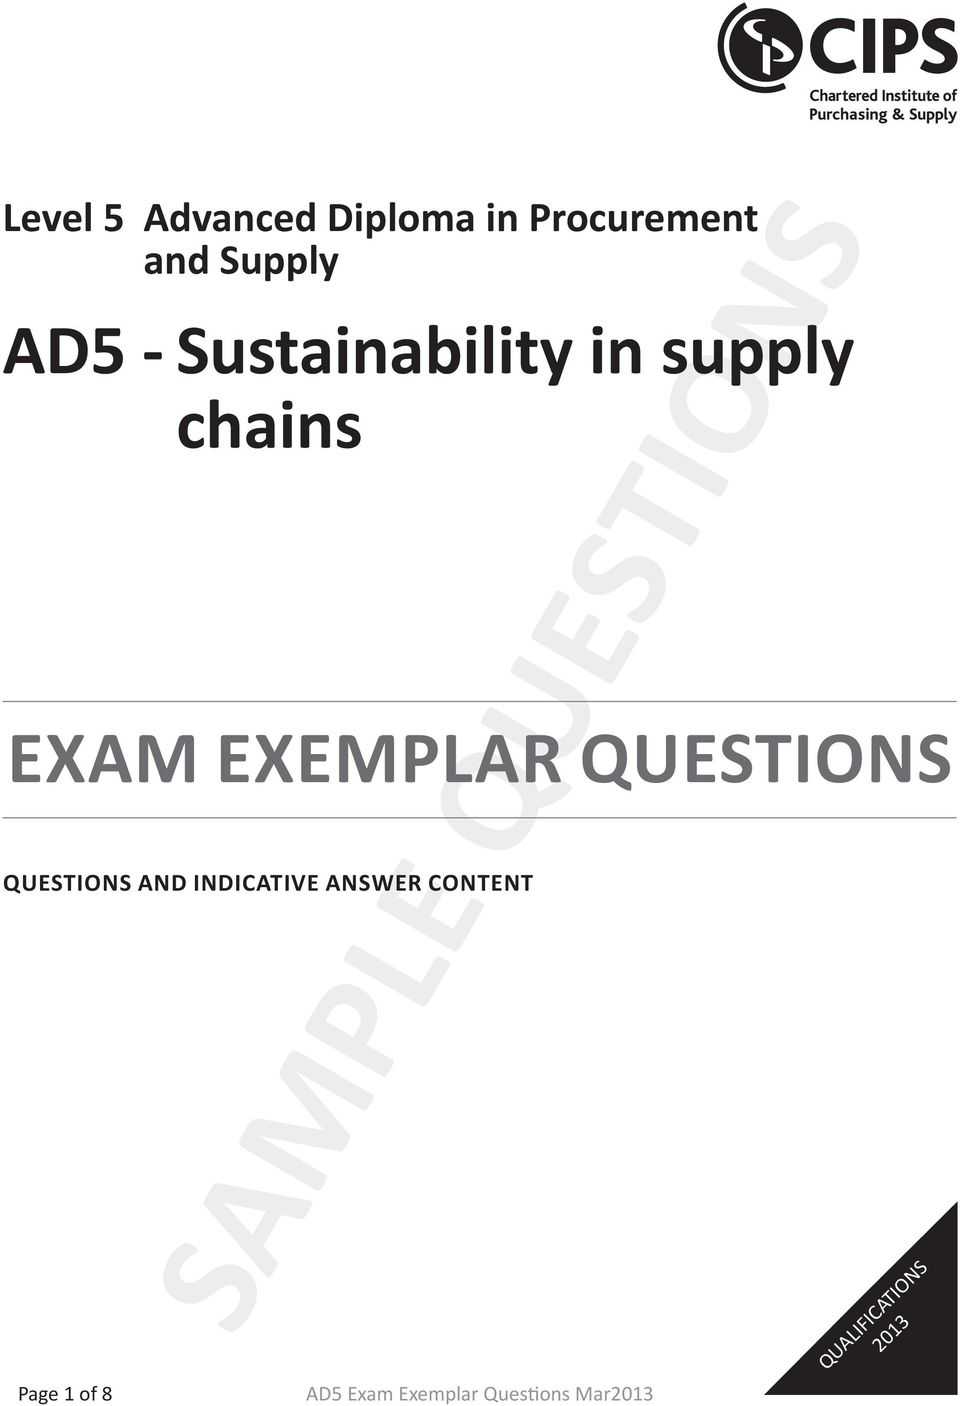 EXAM EXEMPLAR QUESTIONS QUESTIONS AND